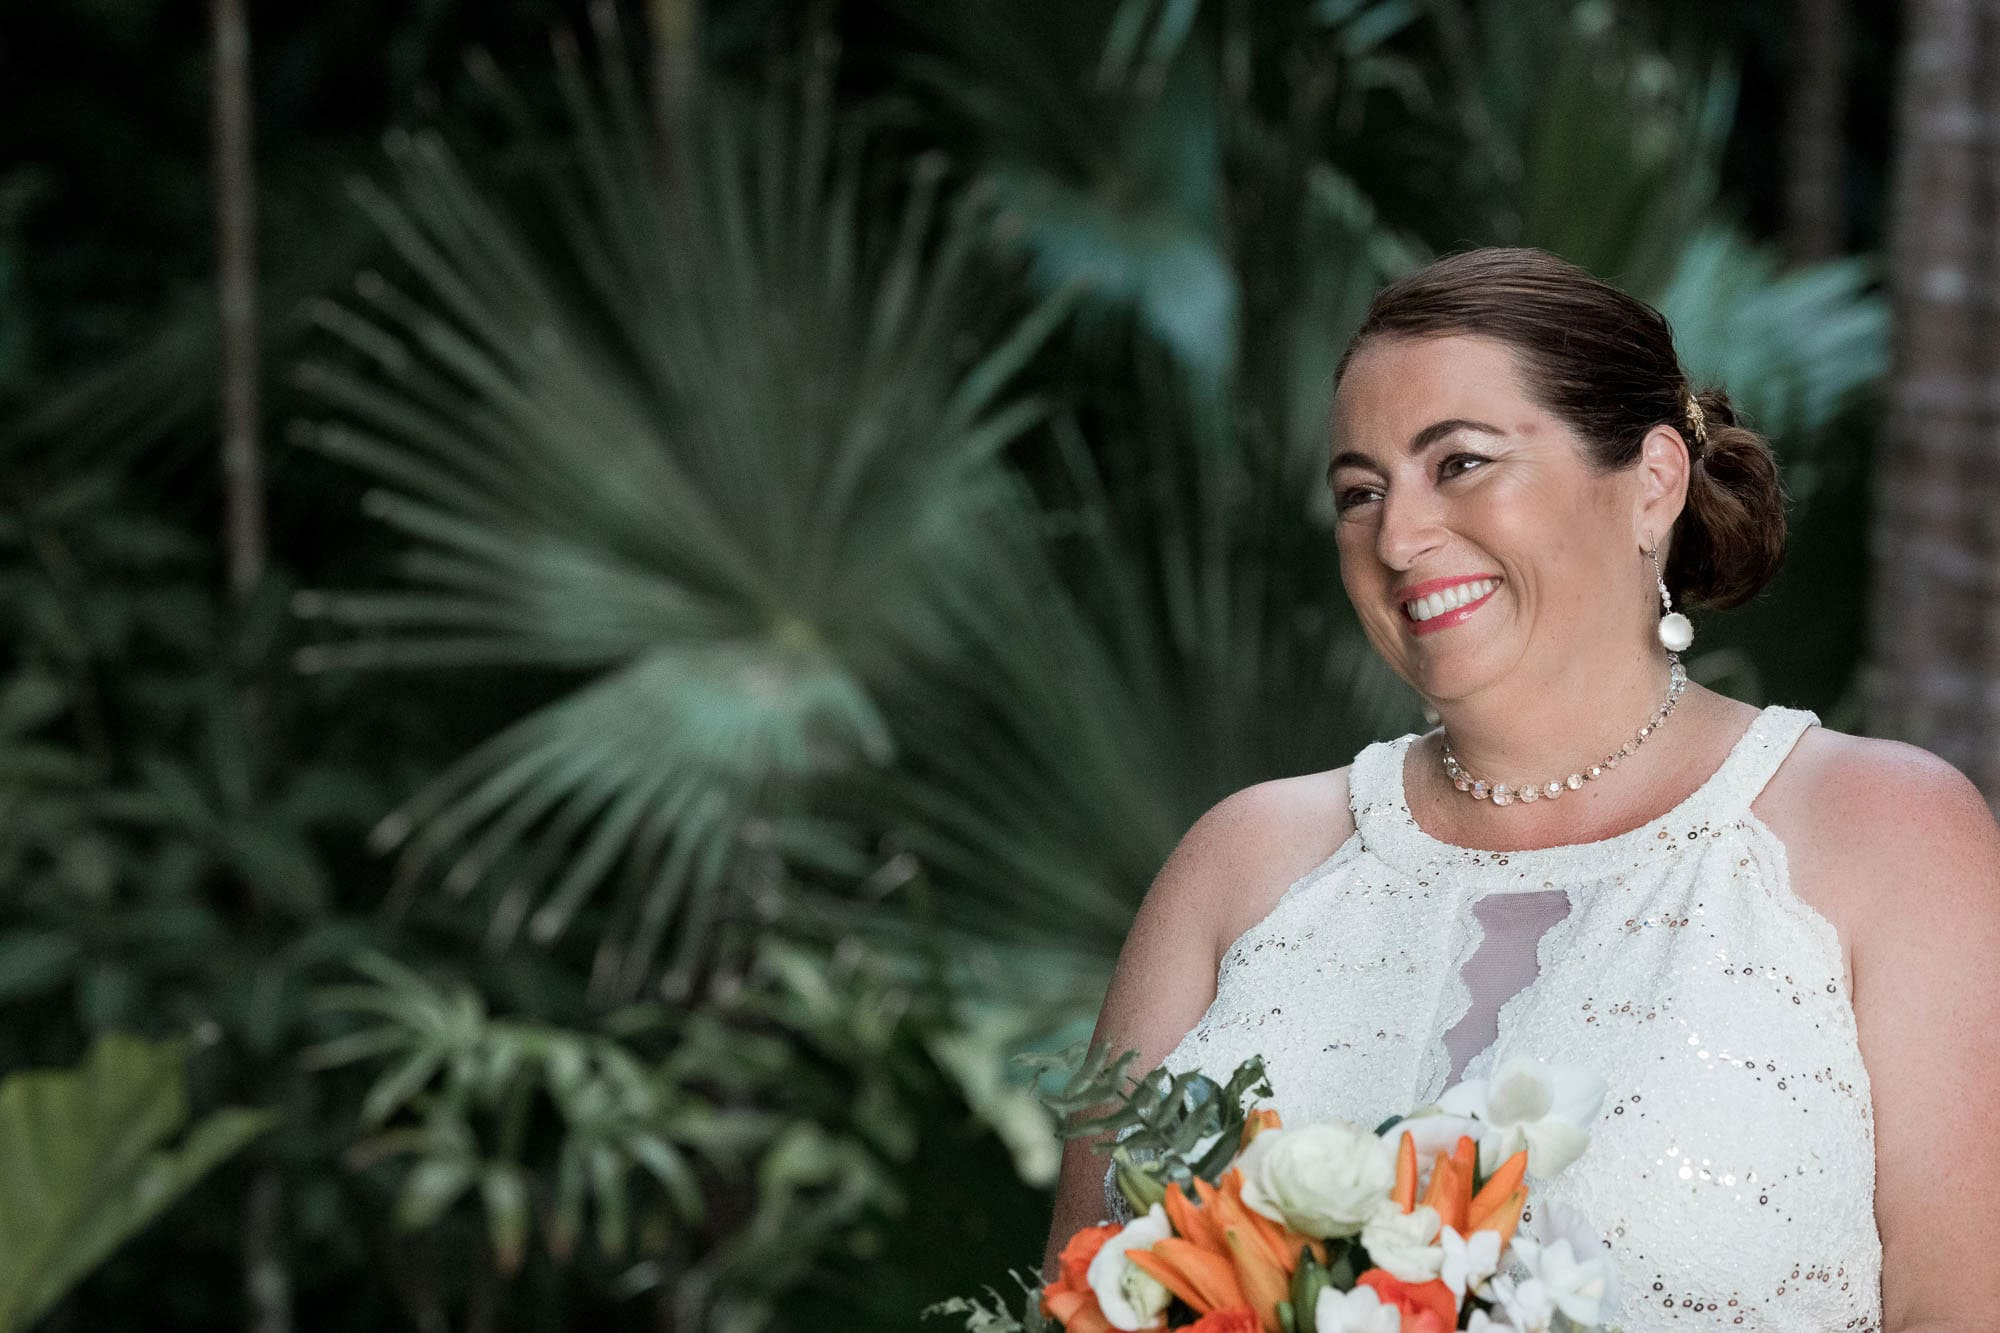 Pure happiness radiates from the bride's face